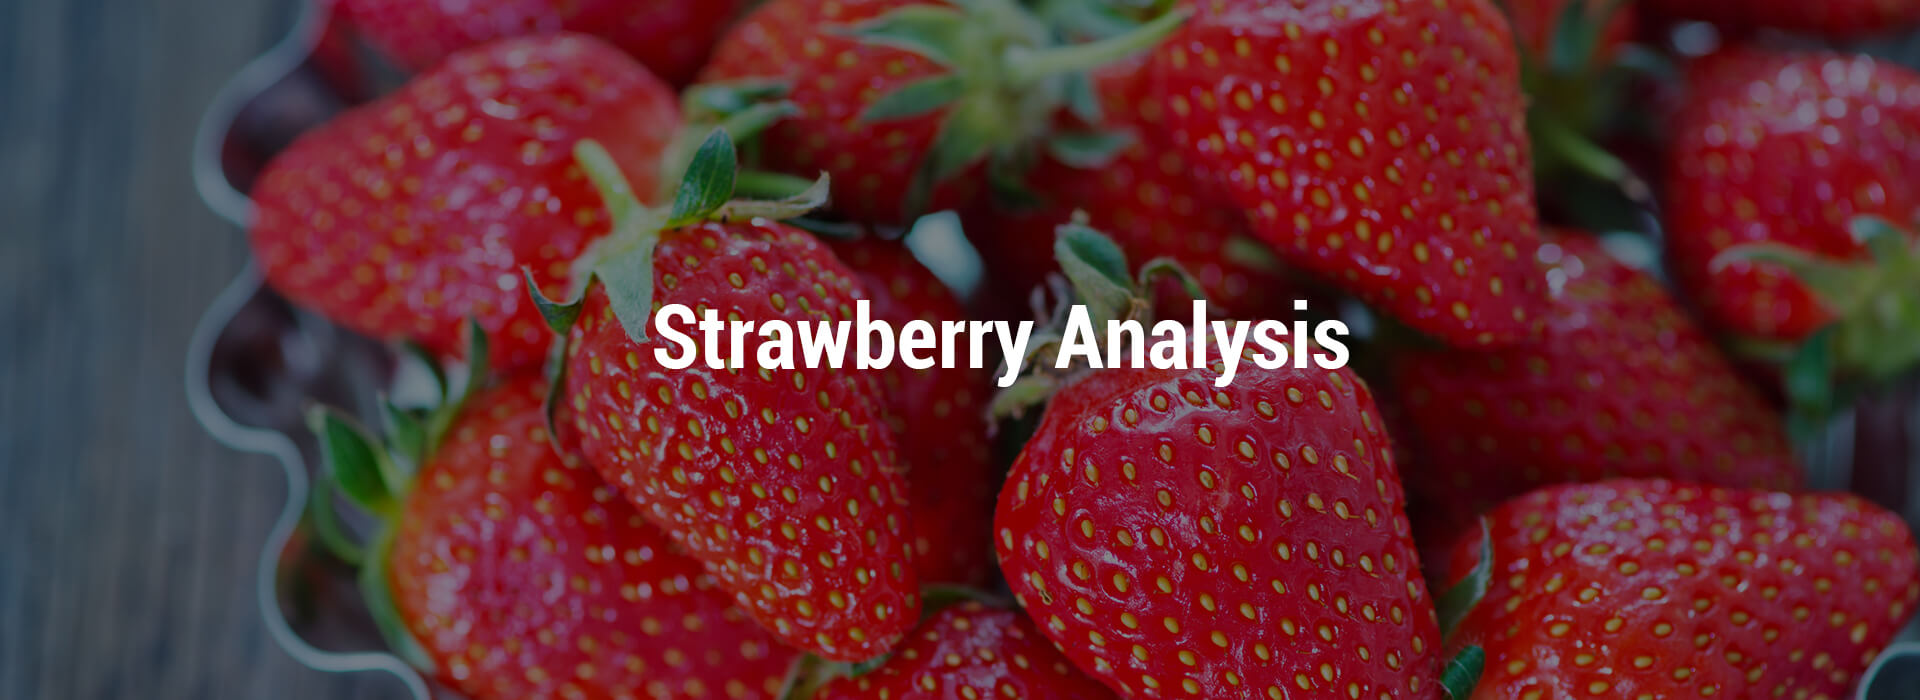 HS-strawberry-header